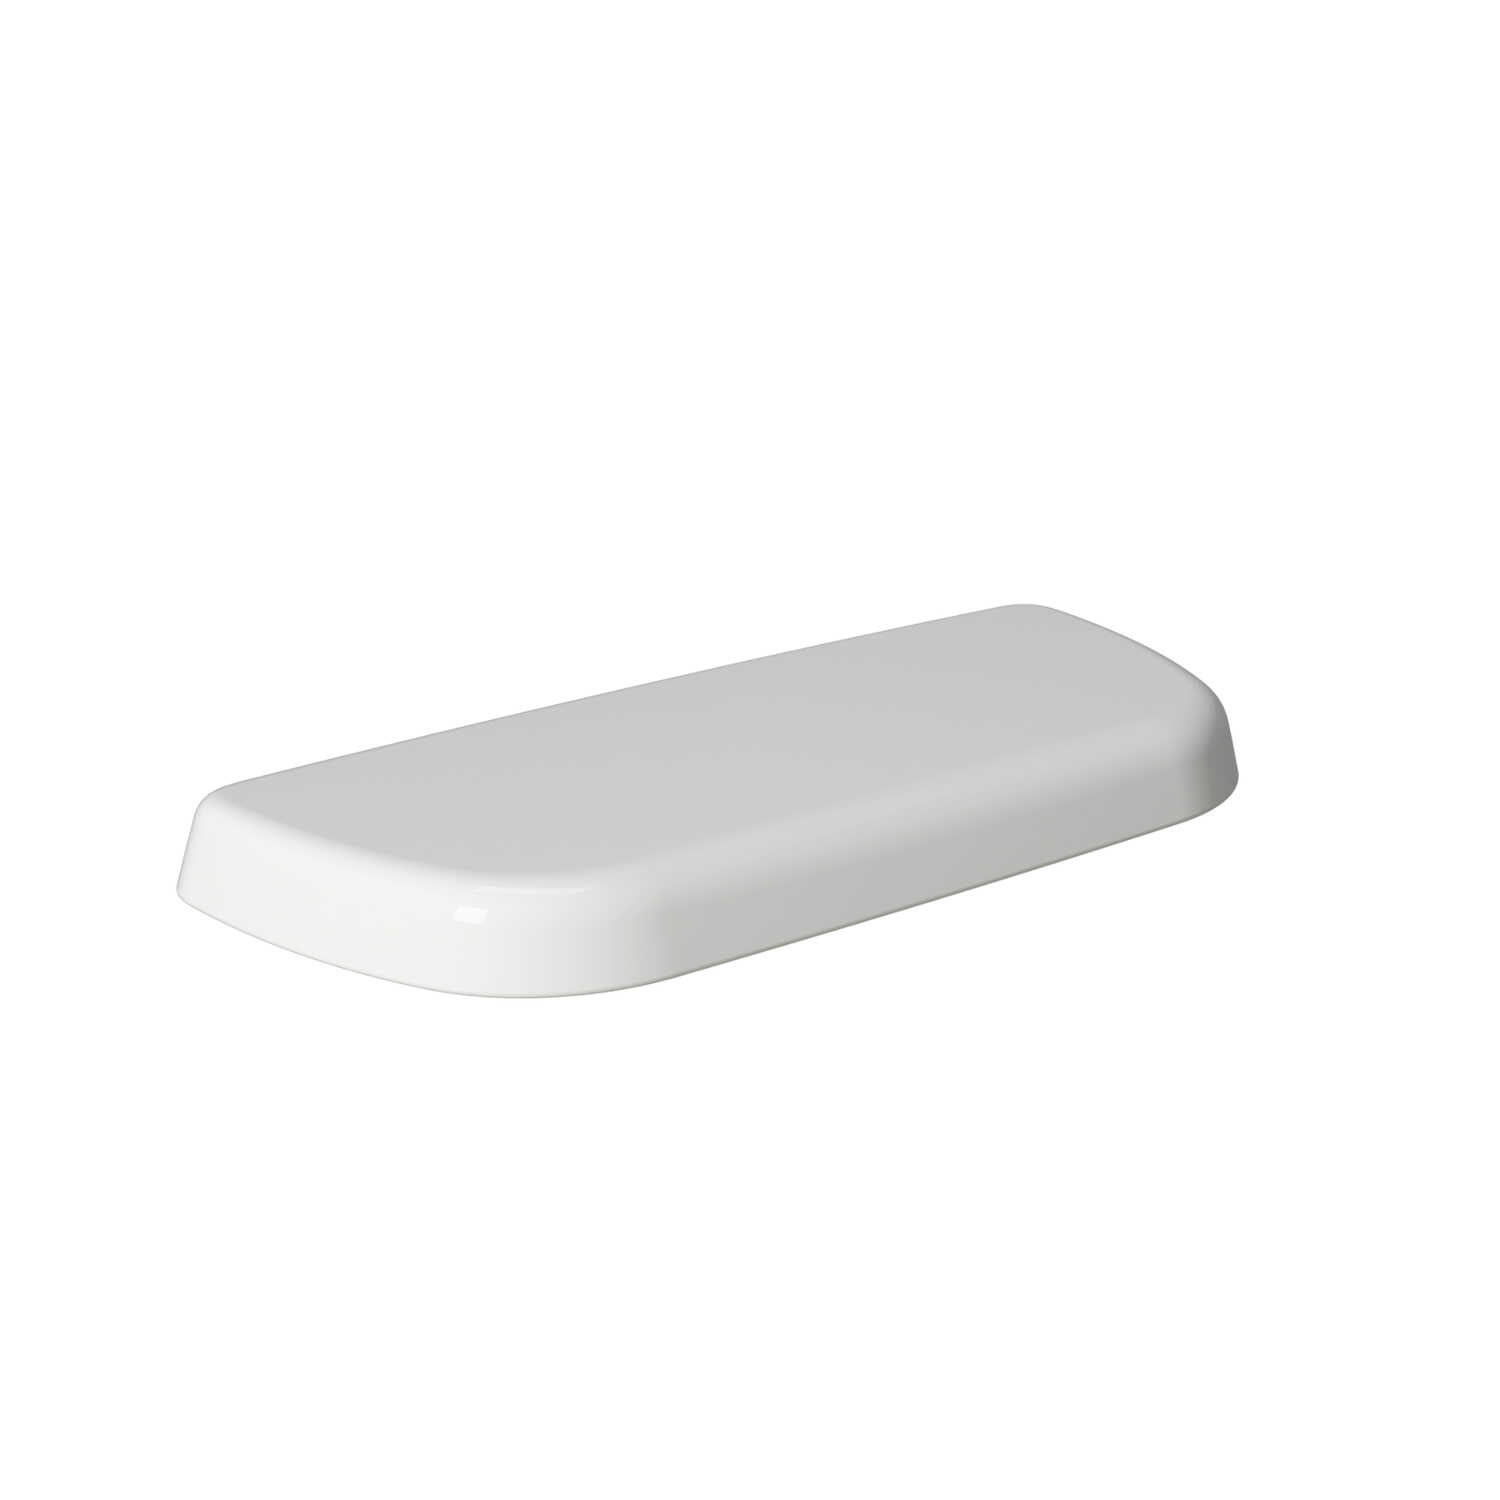 American Standard  Toilet Tank Lid  White  For Colony Toilet Tank